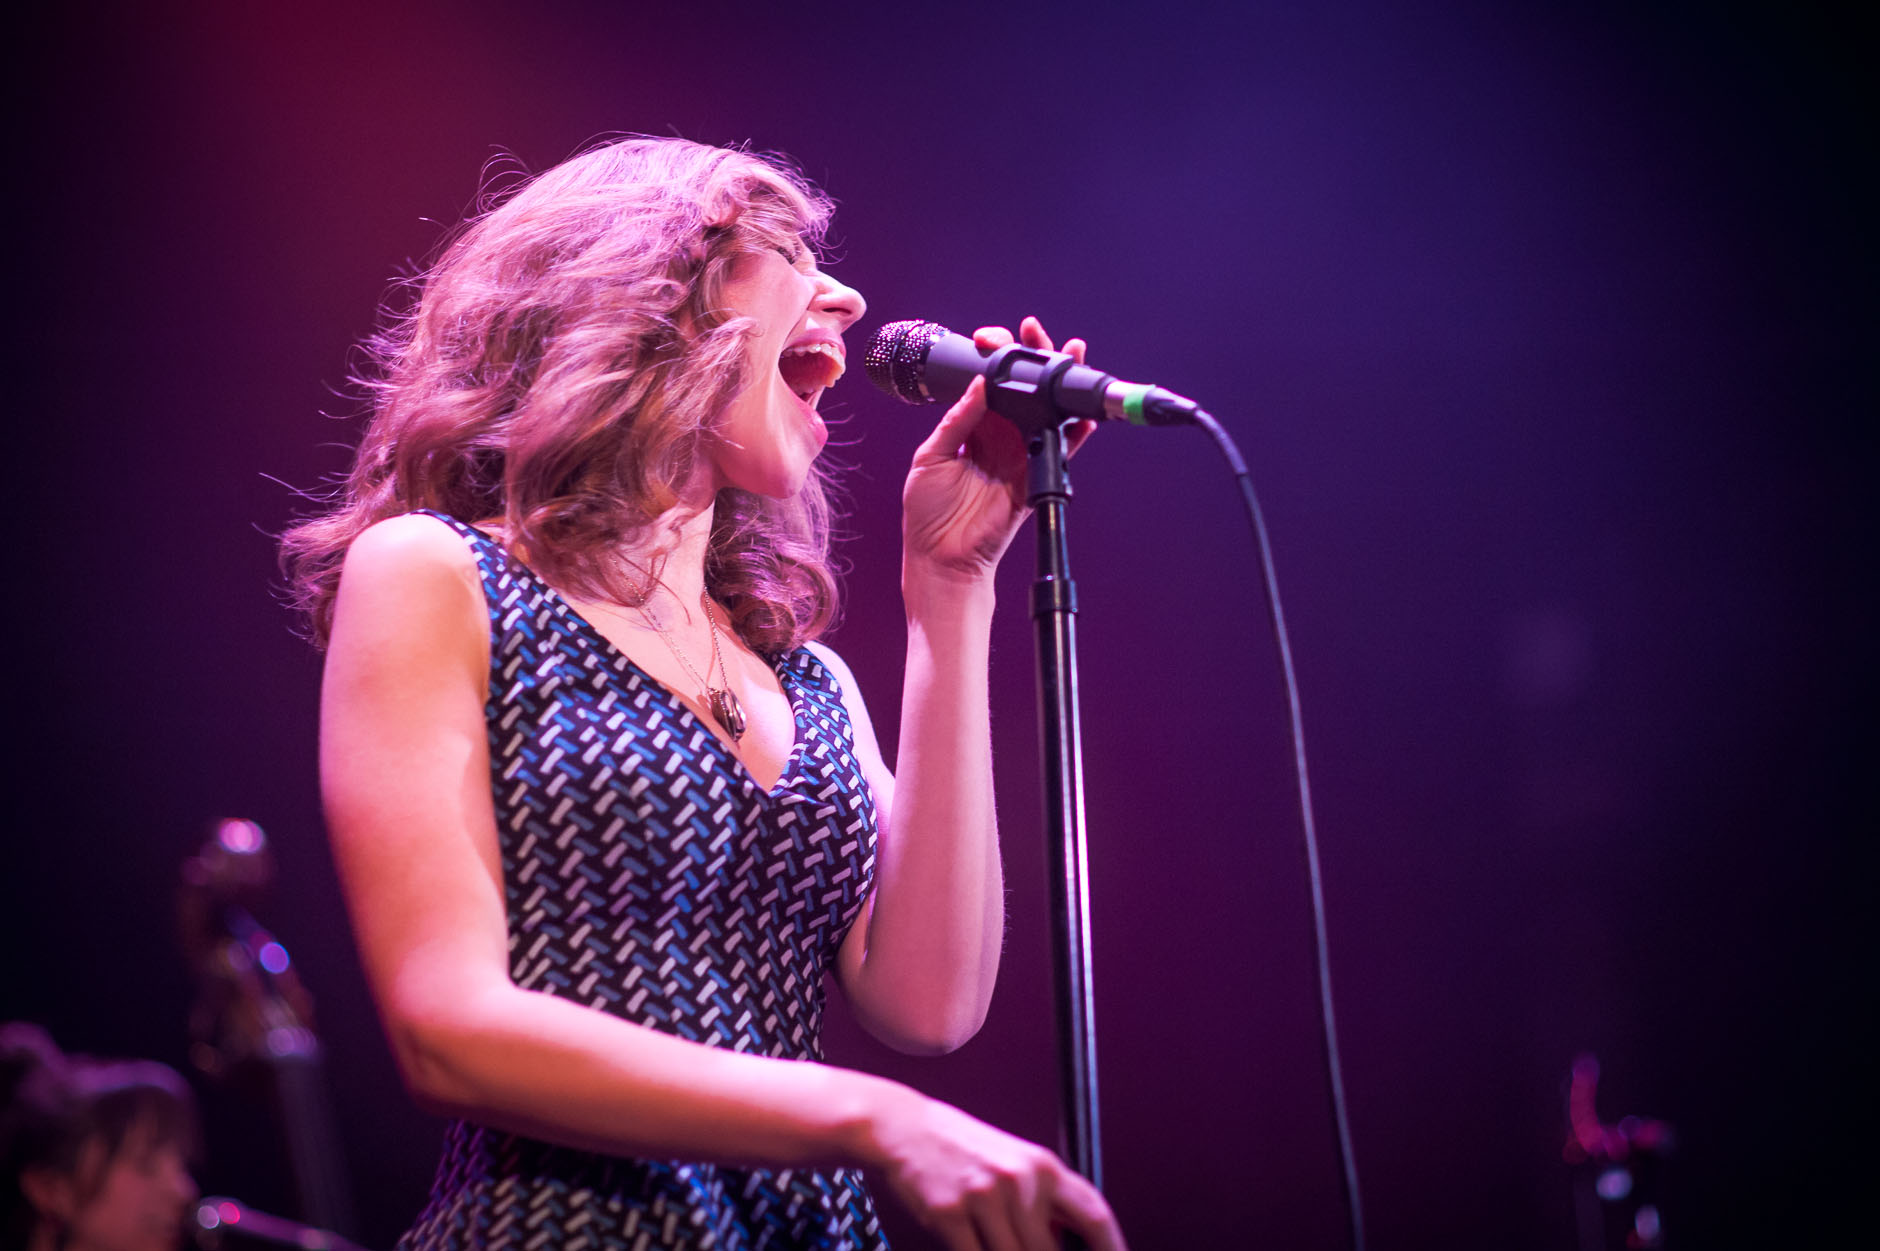 lakestreetdive-Jefferson-feb23-00032